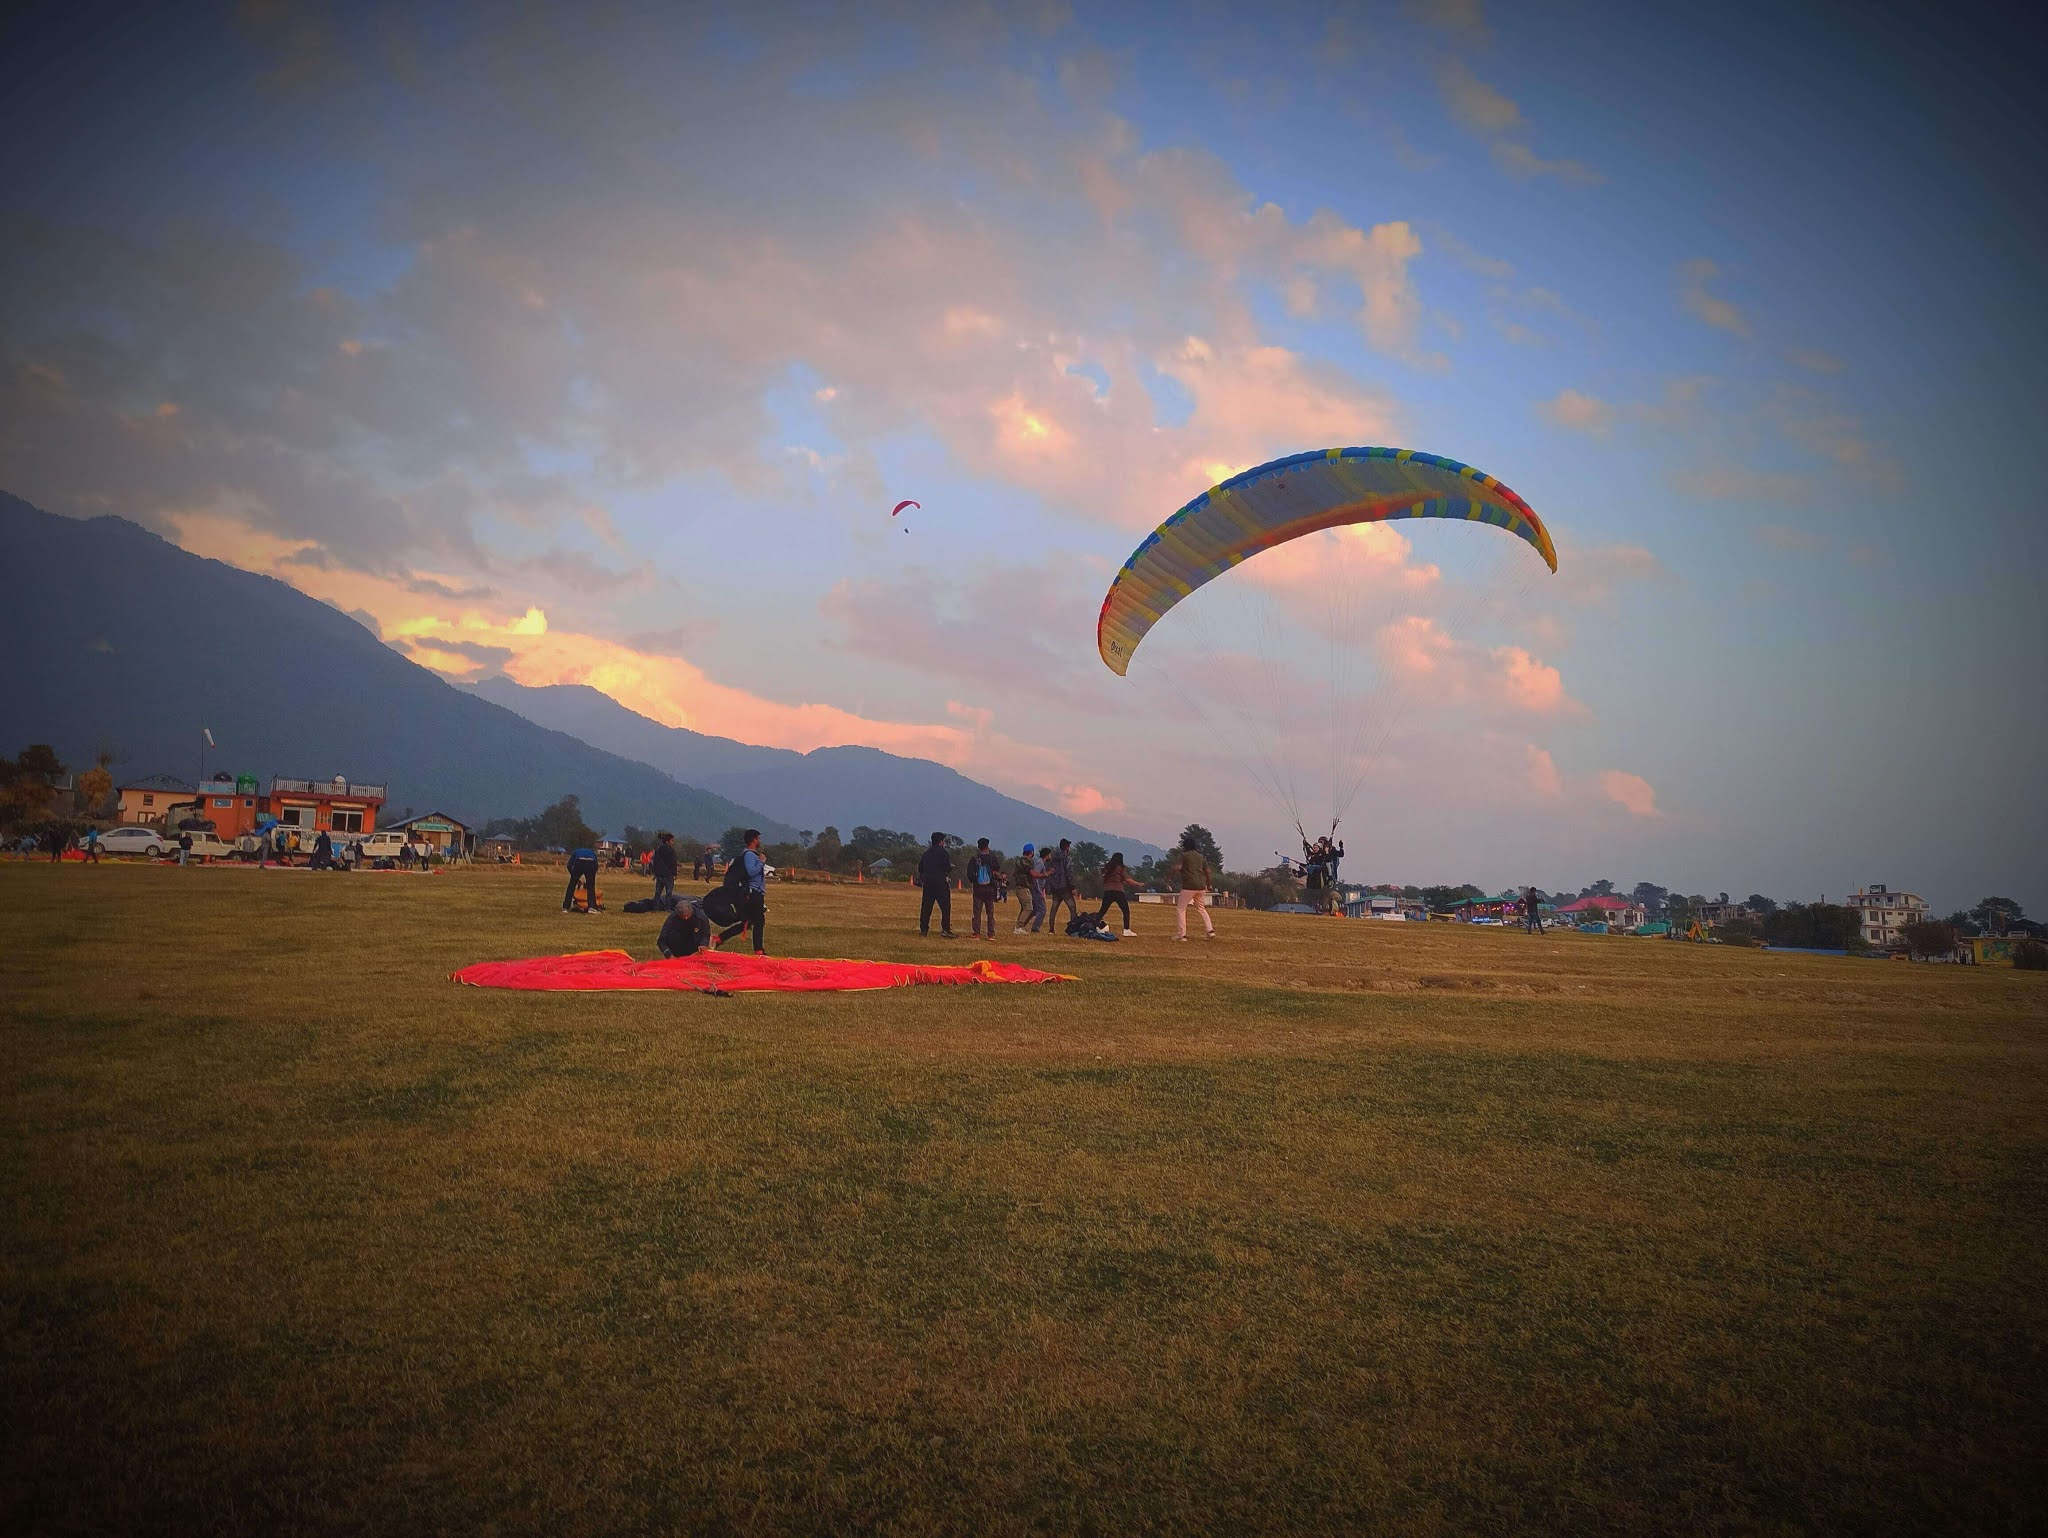 why-bir-billing-paragliding-courses